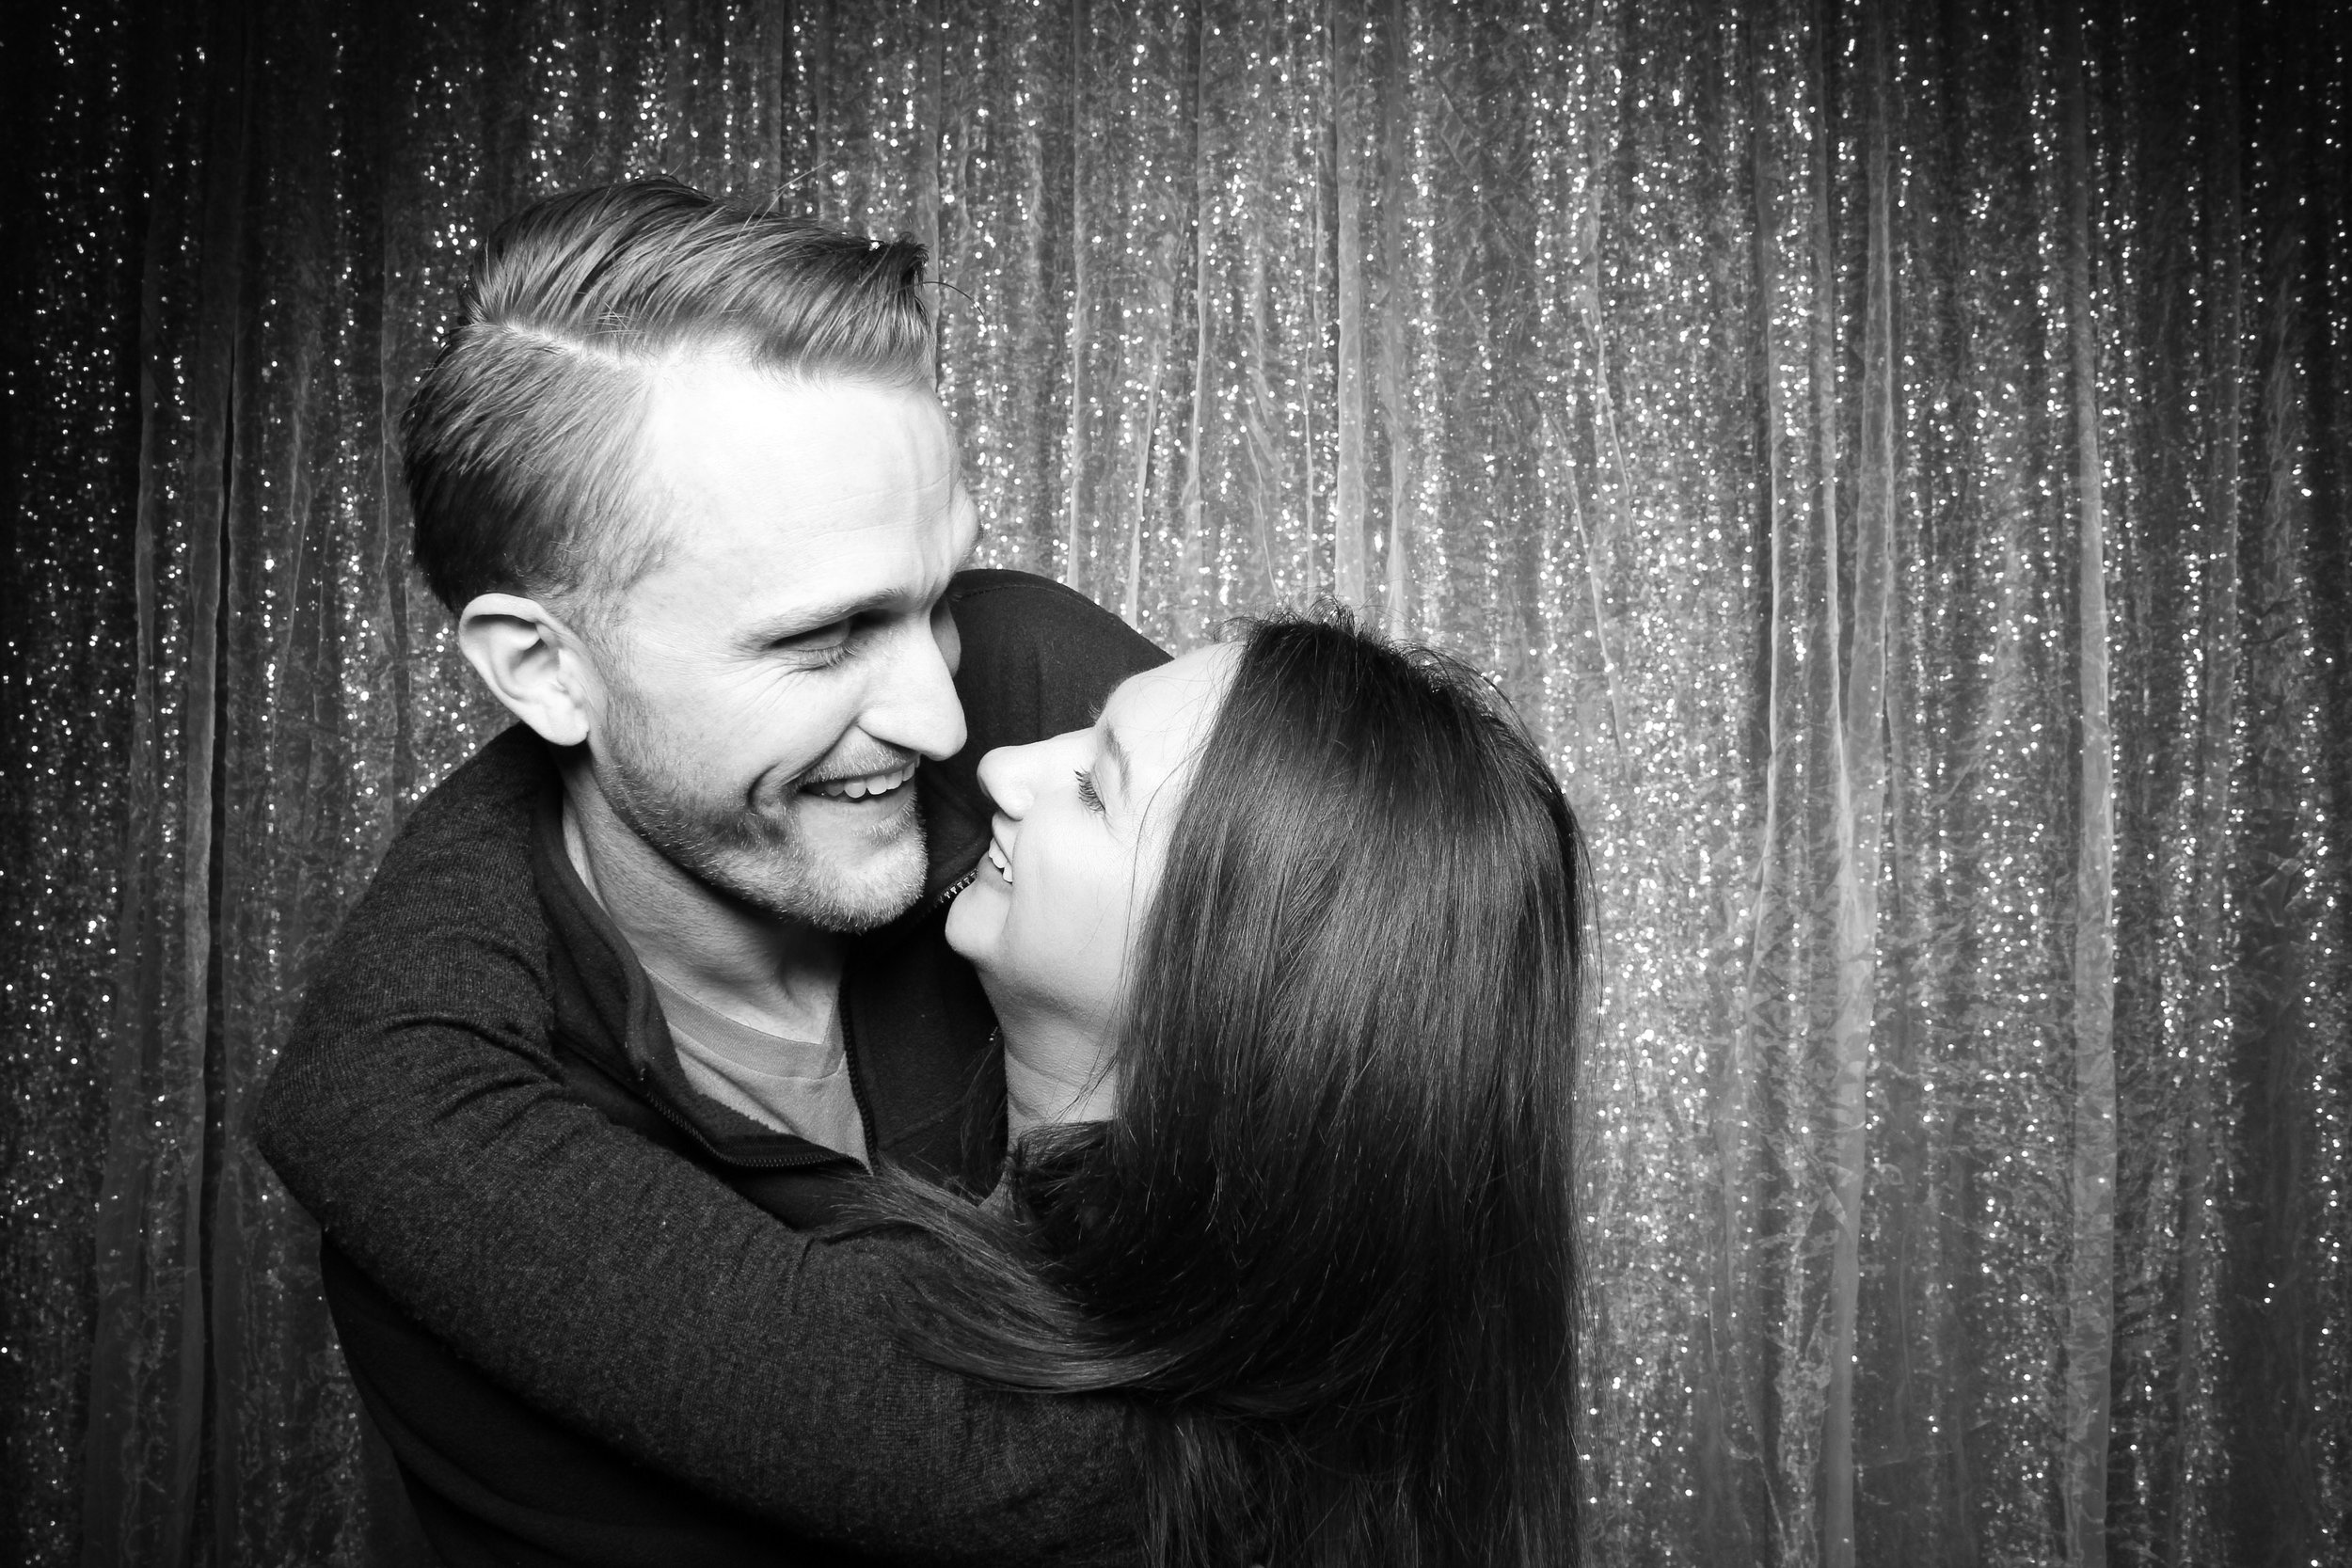 Chicago_Vintage_Wedding_Photobooth_Downers_Grove_07.jpg